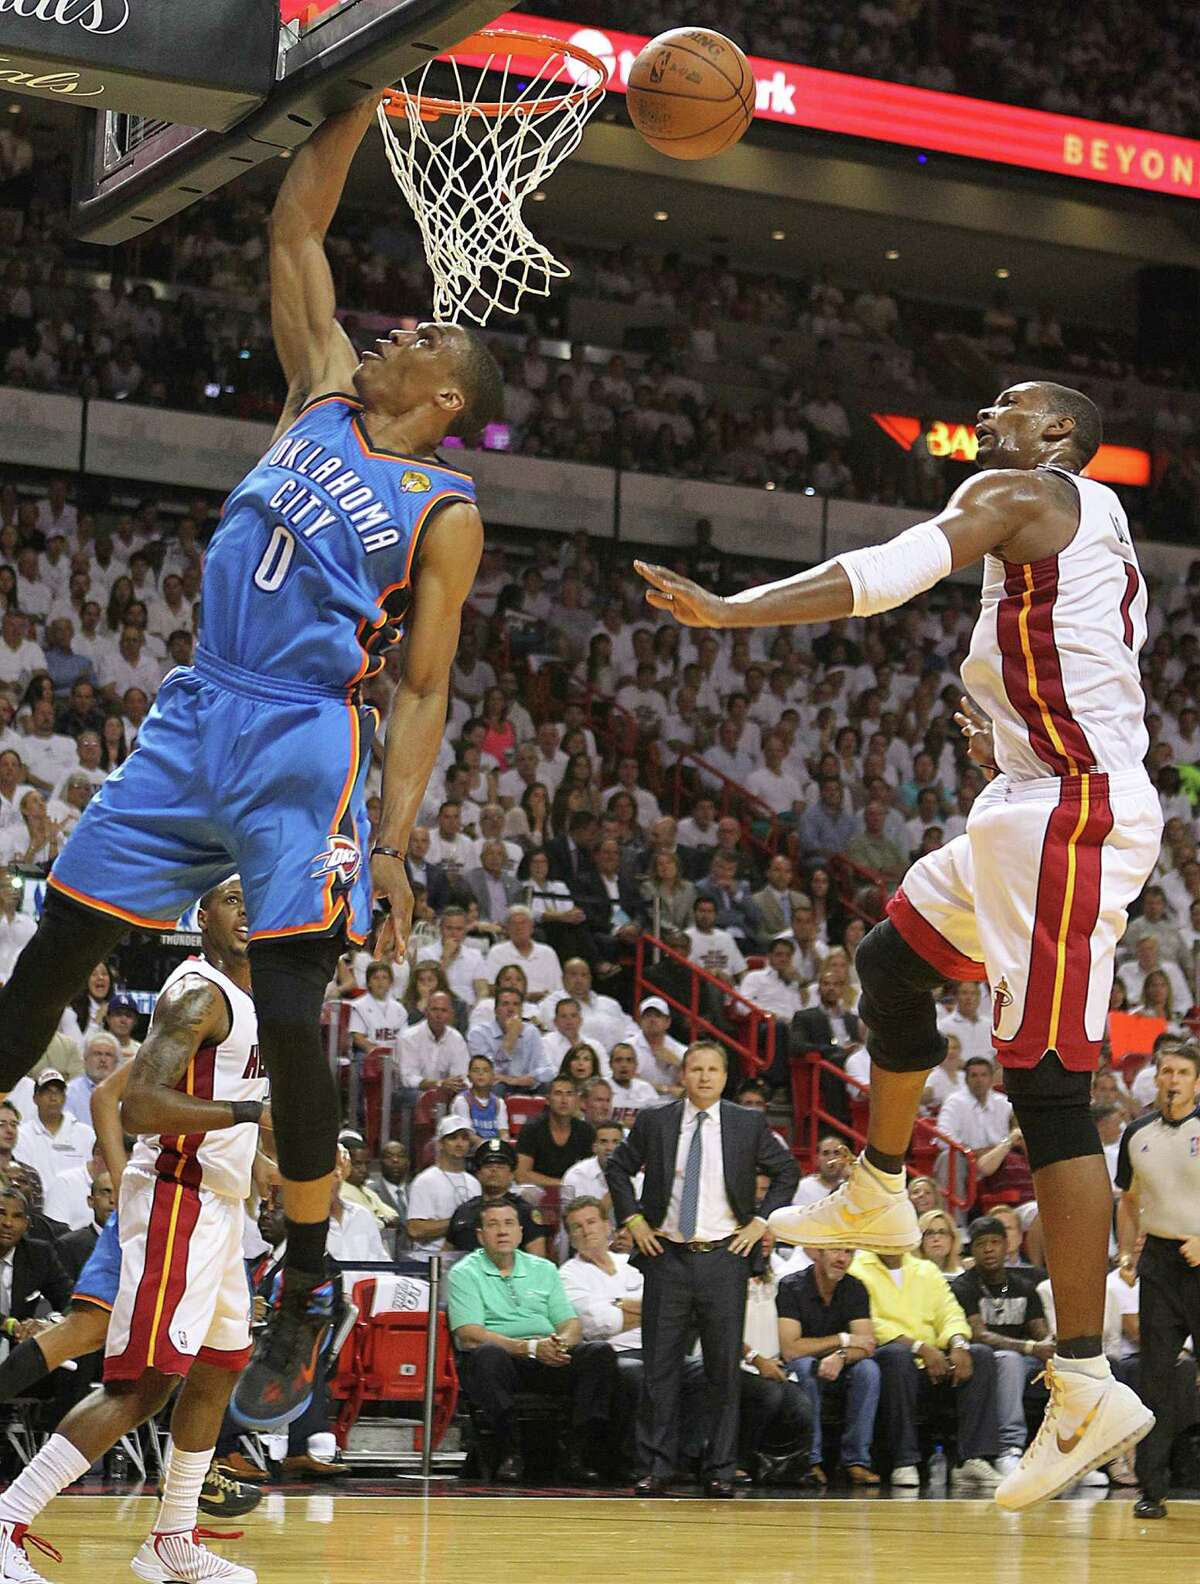 1. Miami Heat Odds: -150 On the court, pairing Westbrook with the newly acquired Jimmy Butler would seem to make sense. Whether their intense personalities can co-exist is another story.